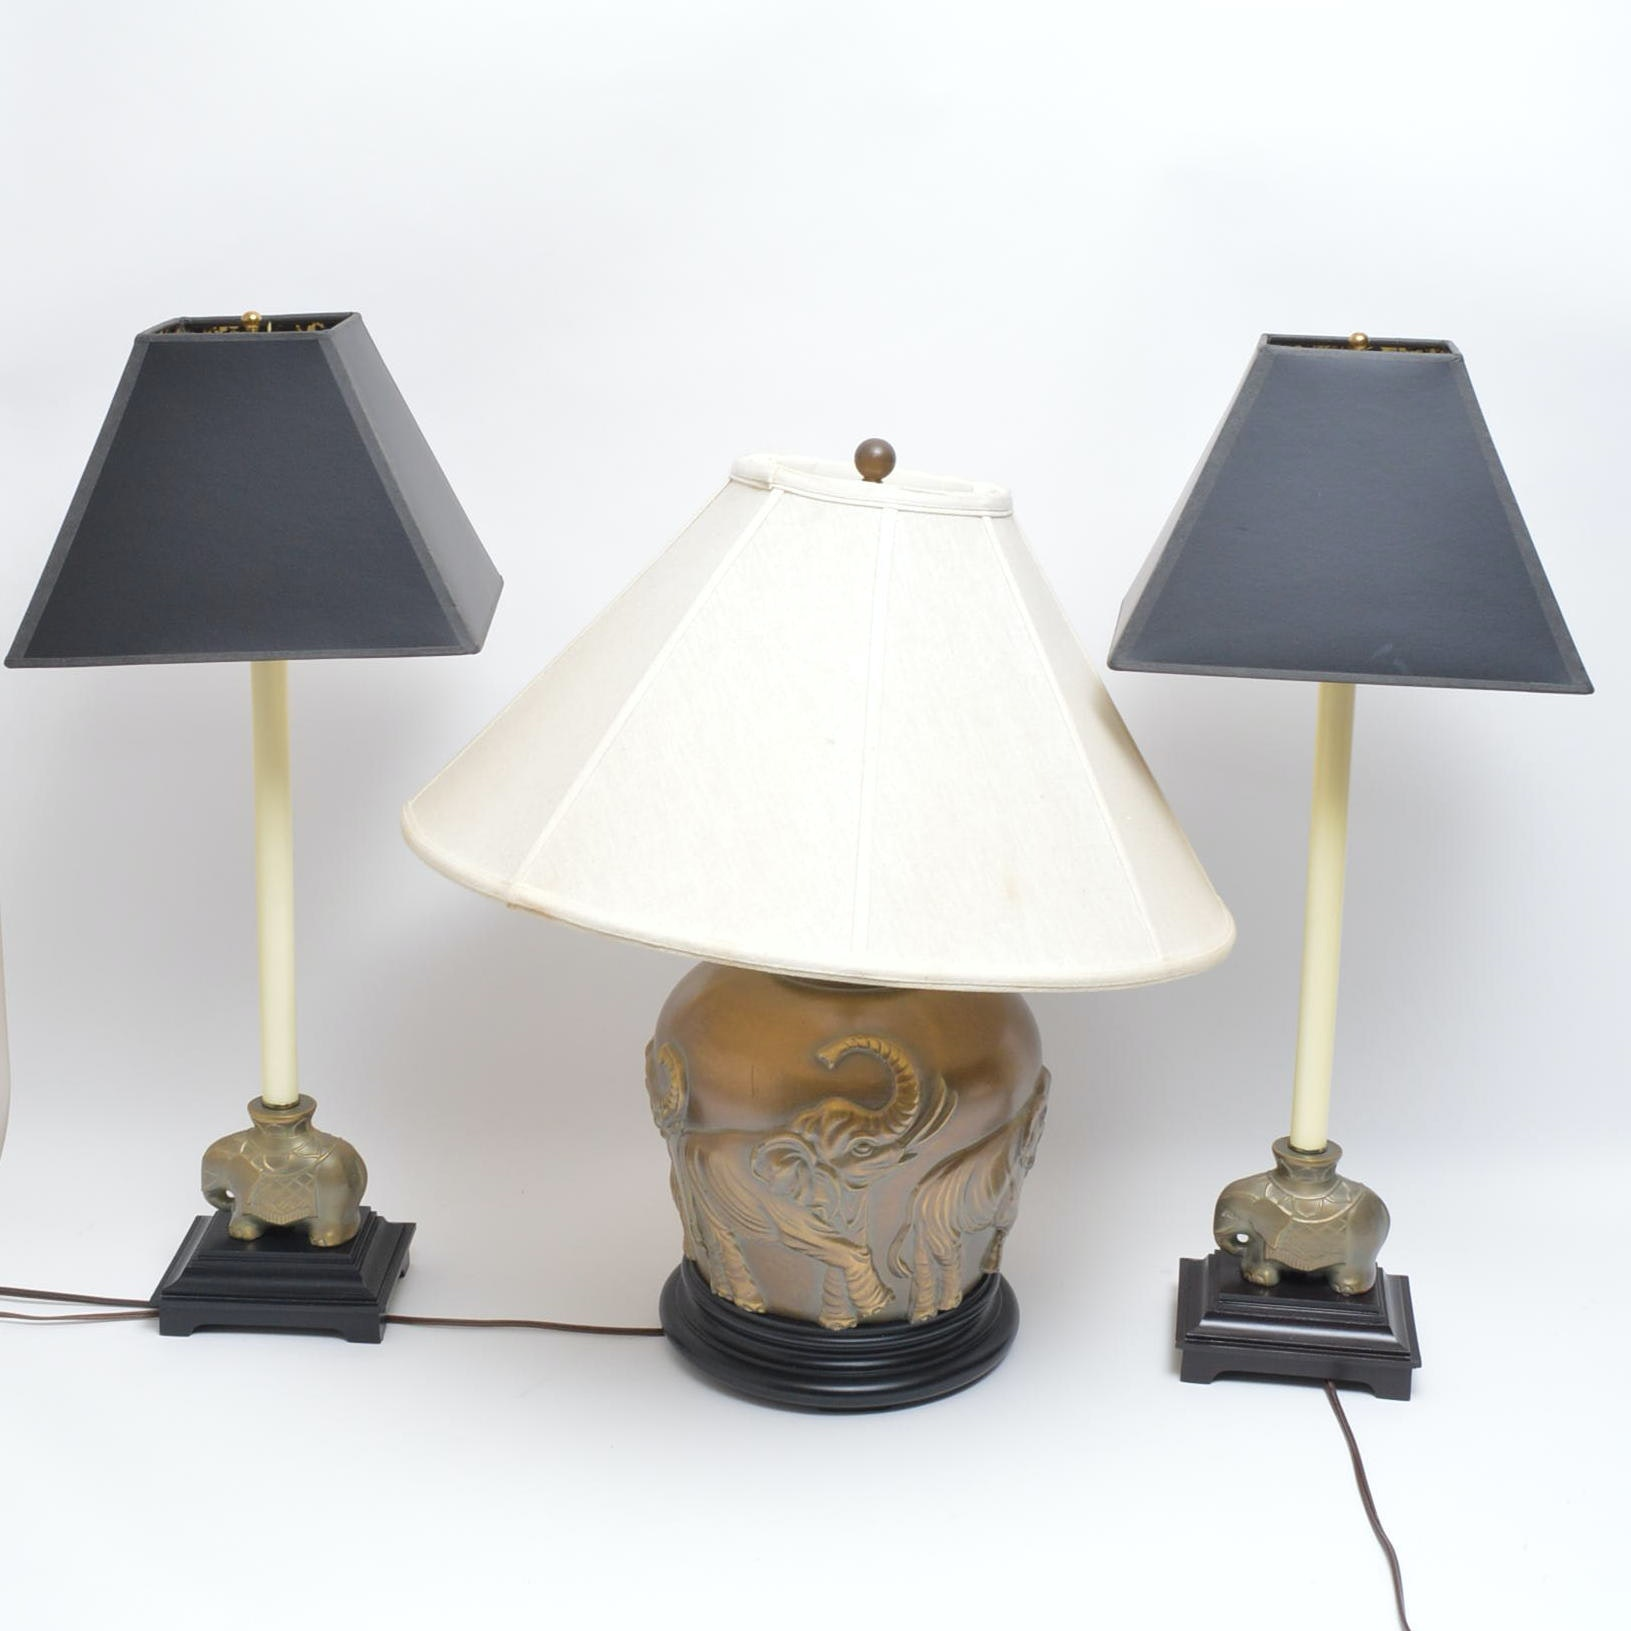 Elephant Themed Table Lamps ...